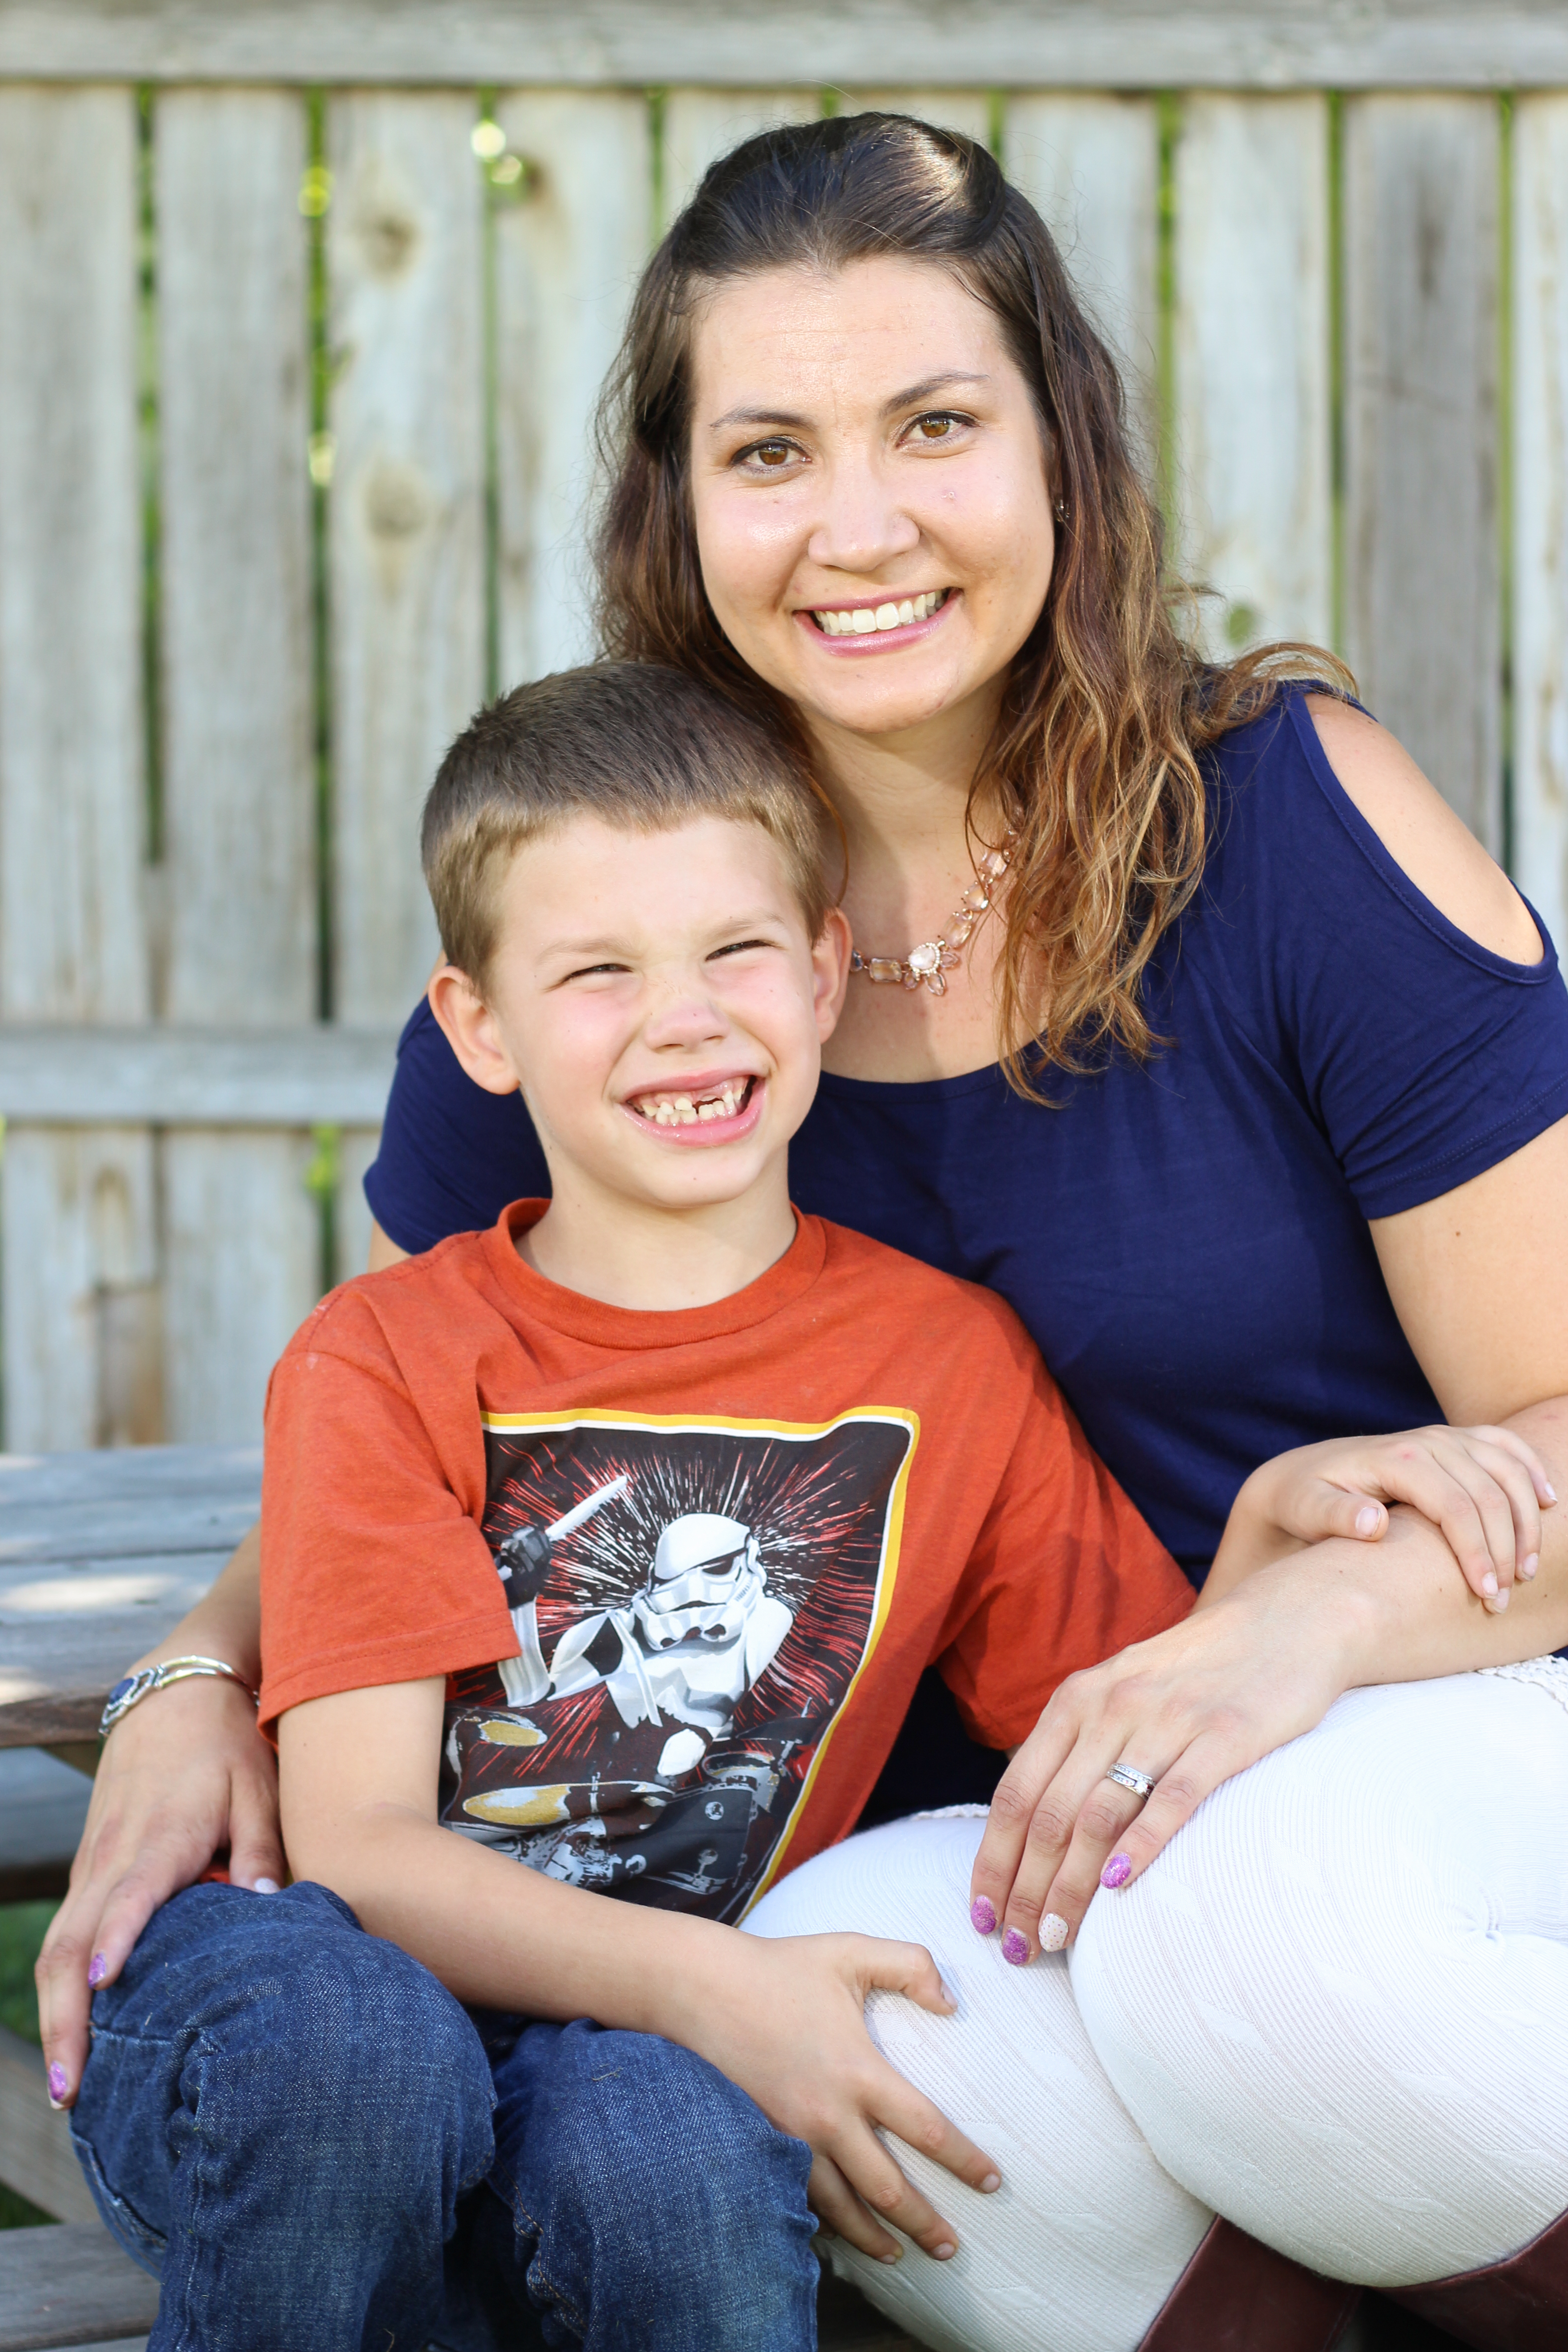 Pounds Family Portraits (44 of 45)